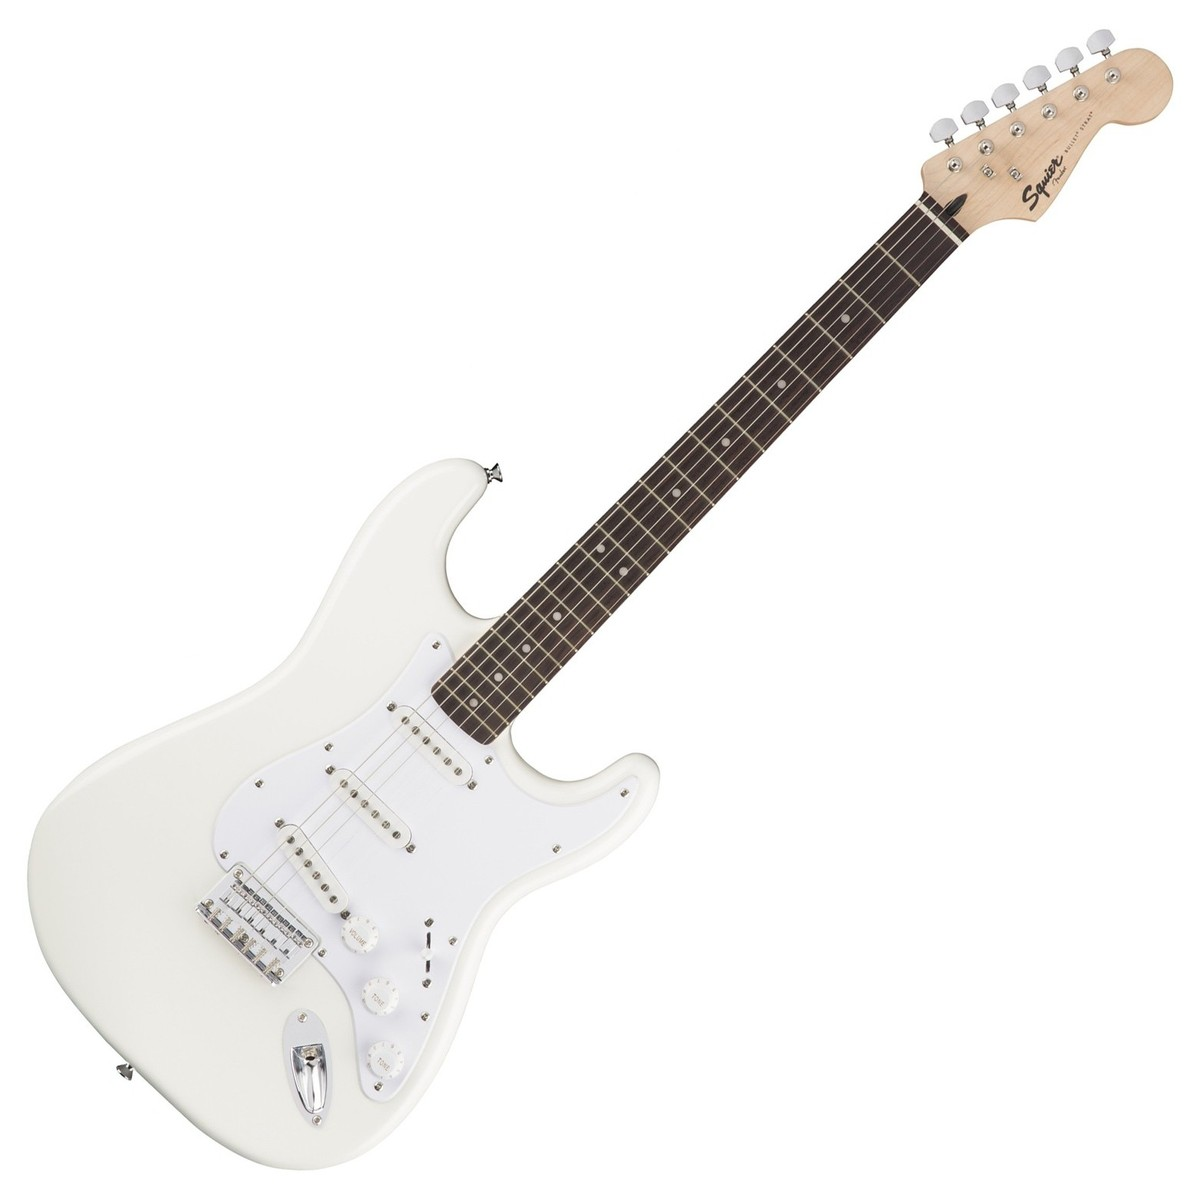 squier by fender bullet stratocaster ht arctic white at gear4music. Black Bedroom Furniture Sets. Home Design Ideas